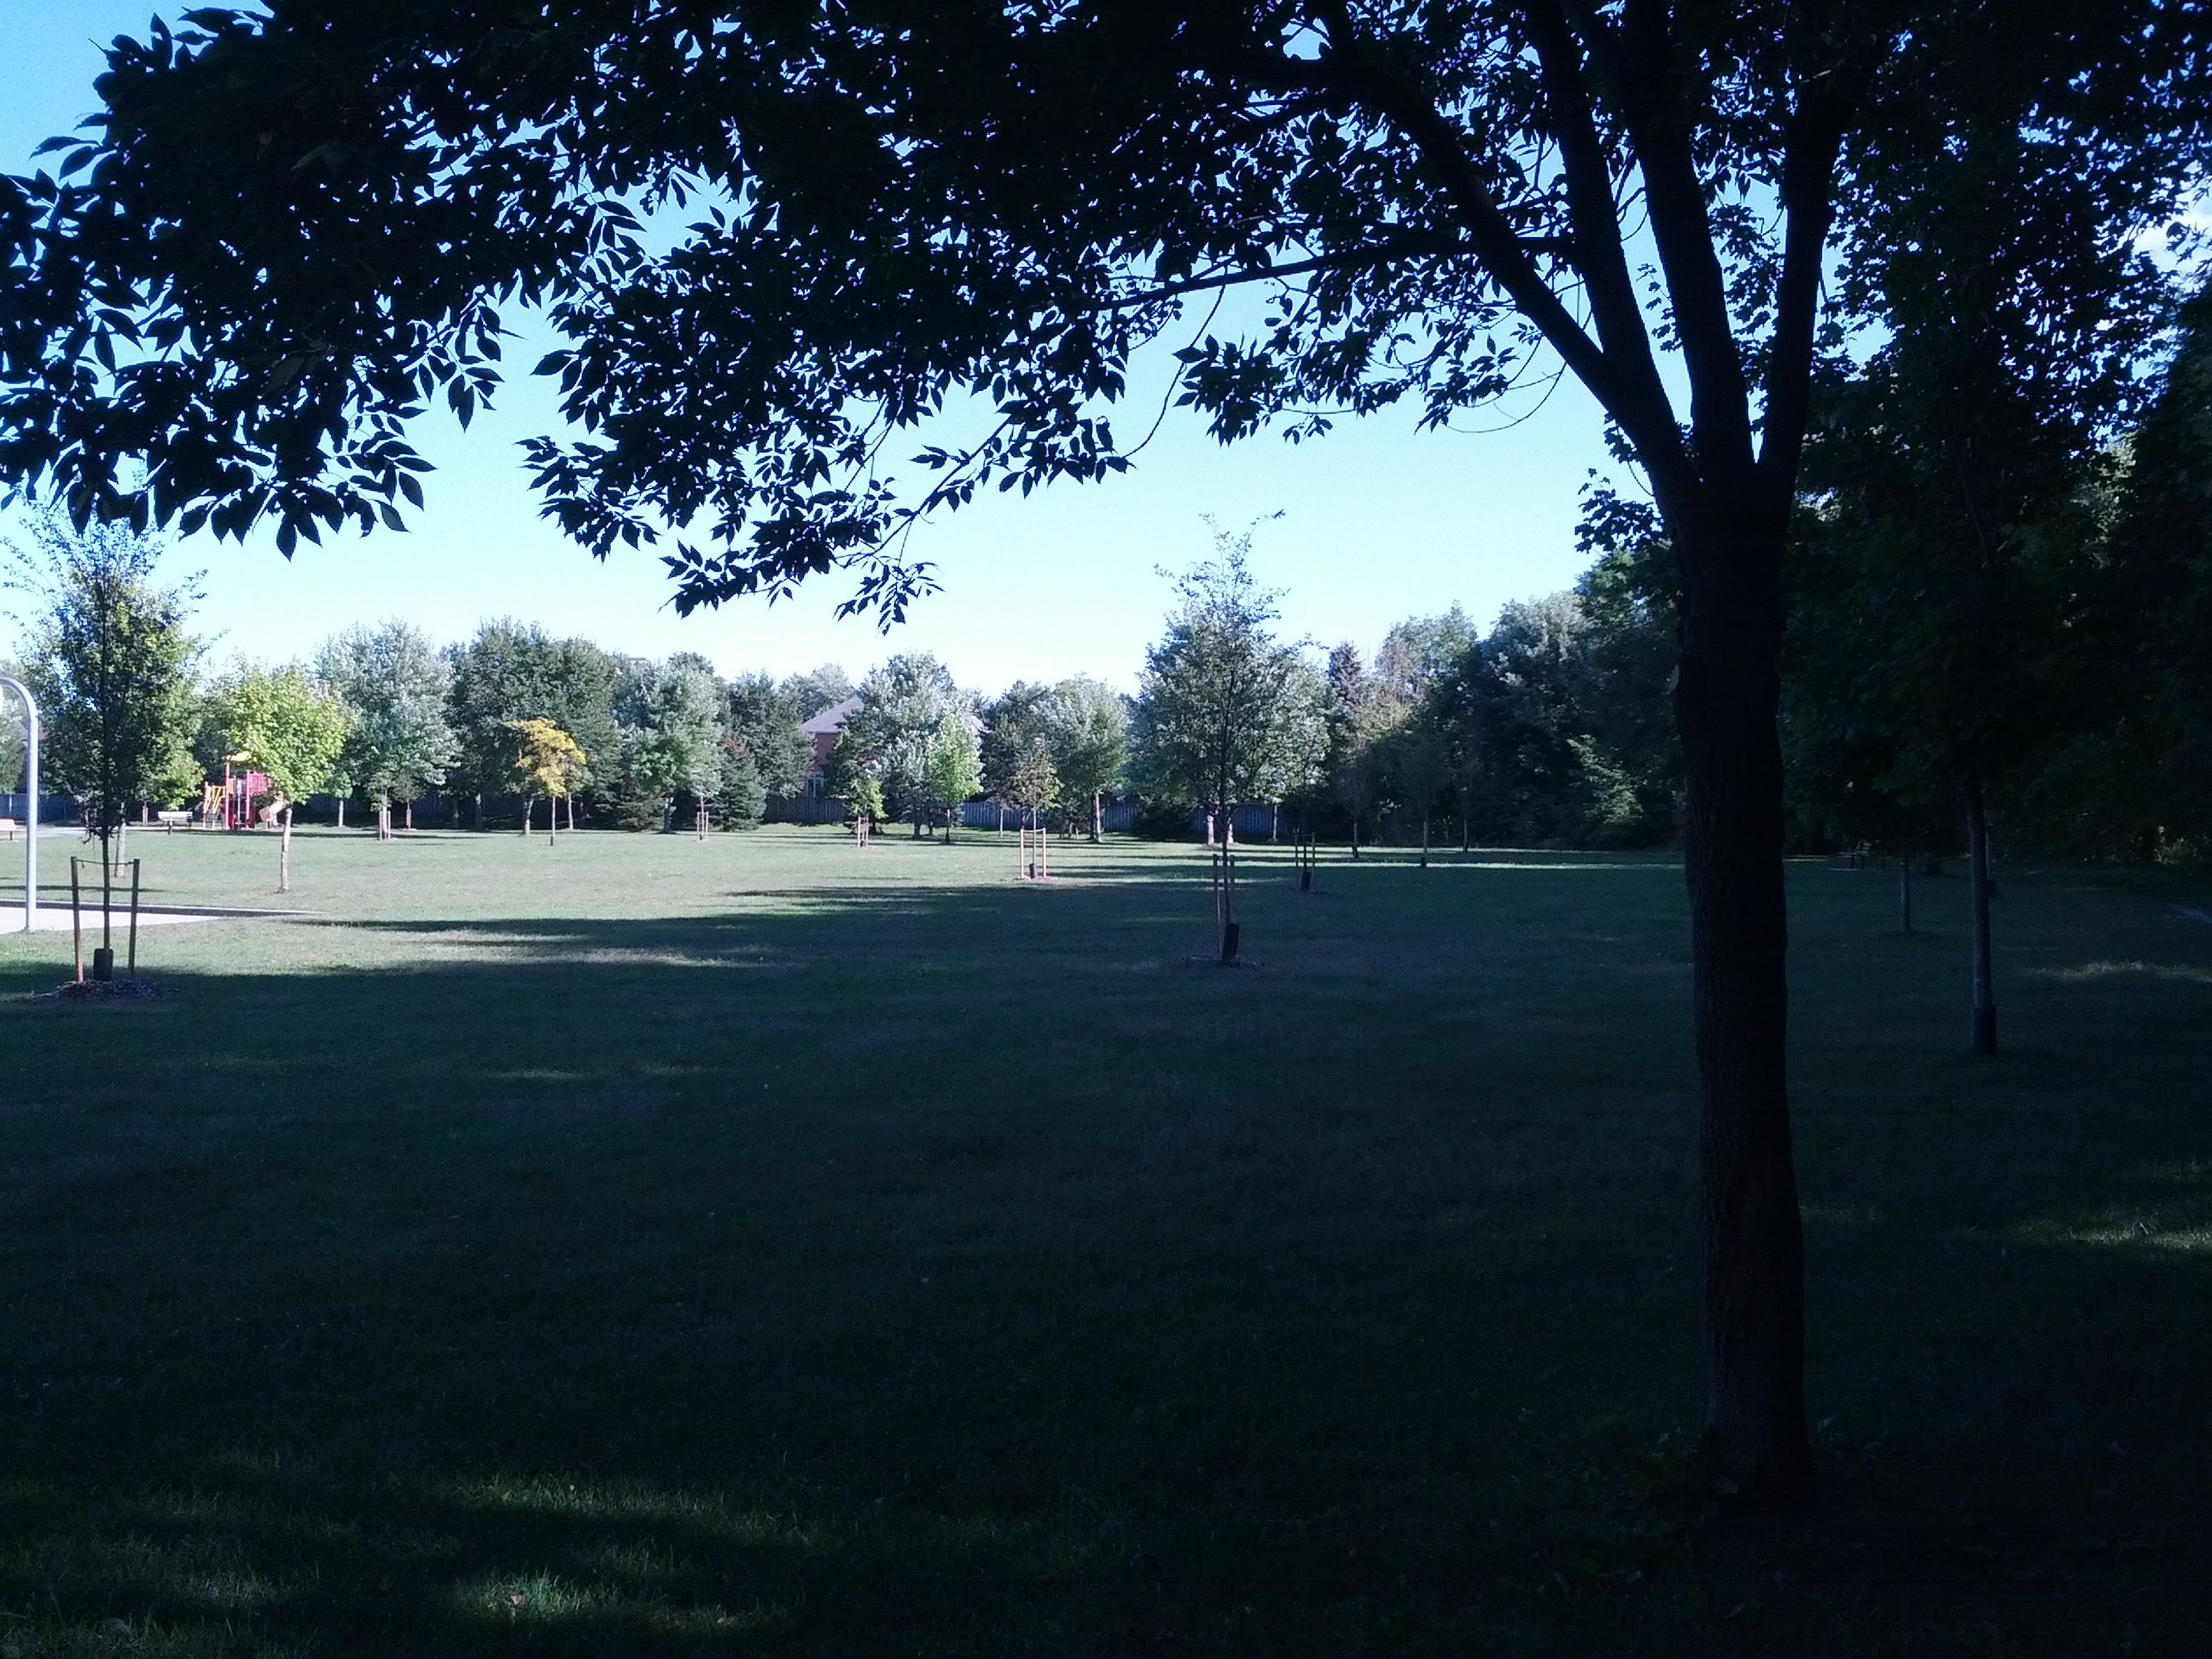 Late Afternoon, September, Carriage Hill Park, London, Ontario.